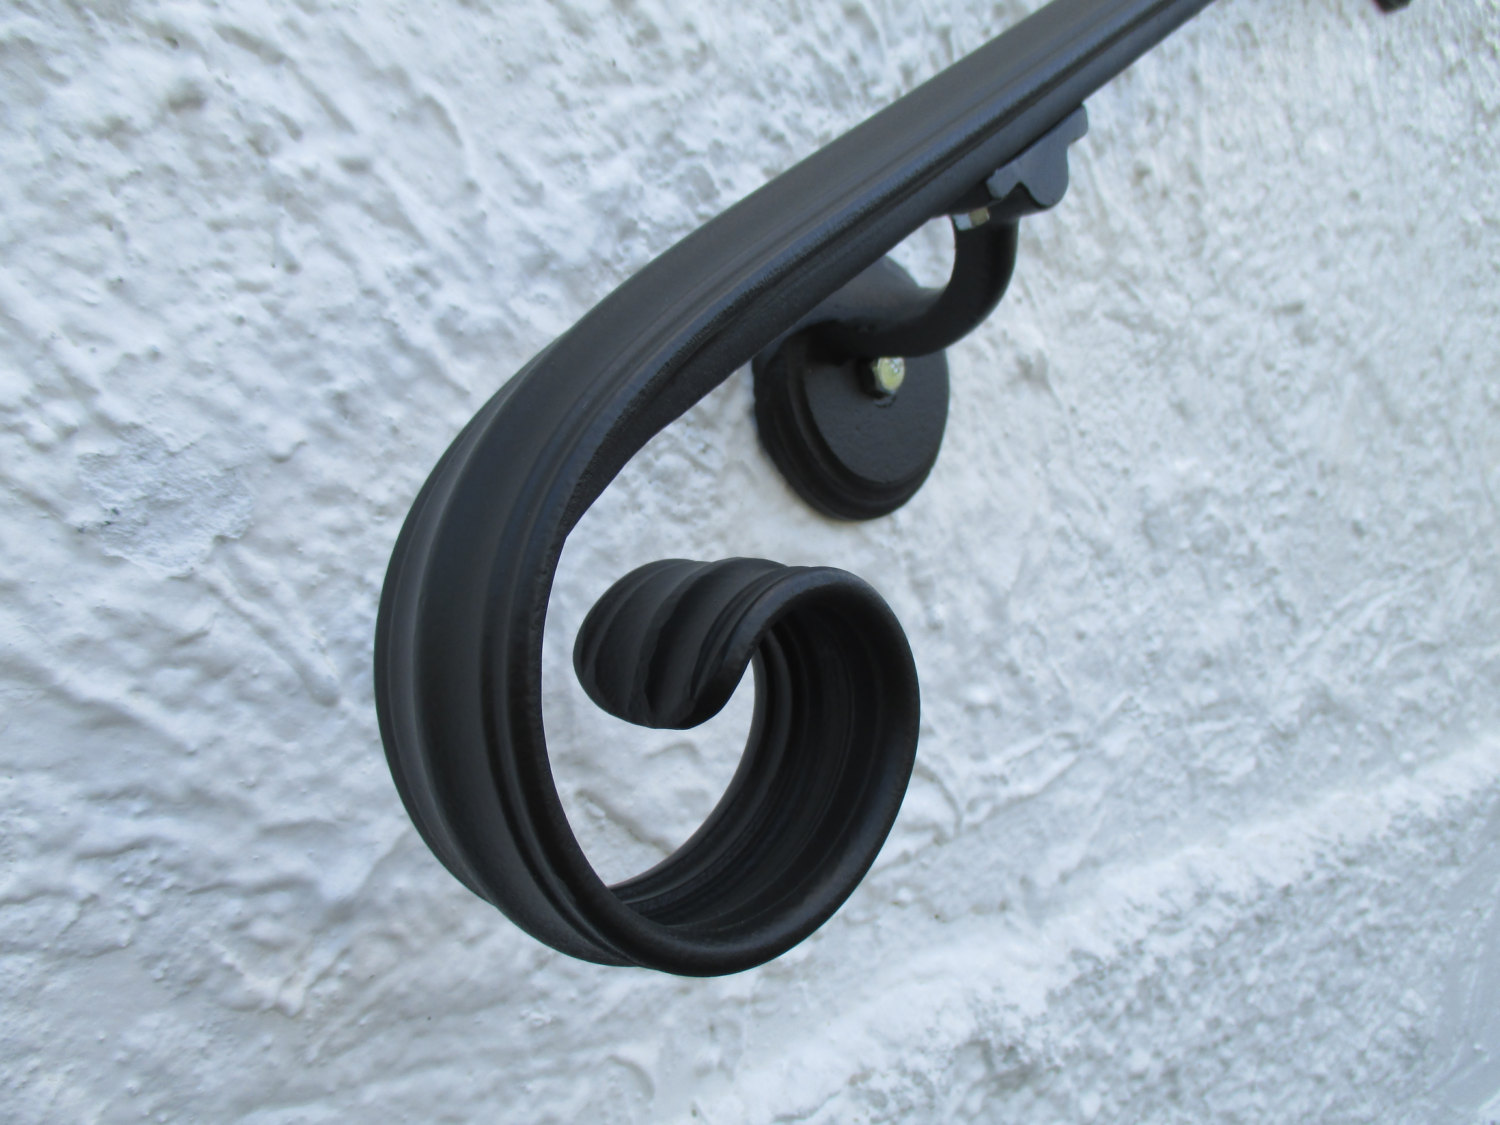 12 Ft Wrought Iron Wall Mount Hand Rail Elegant Scroll Design Interior Or  Exterior